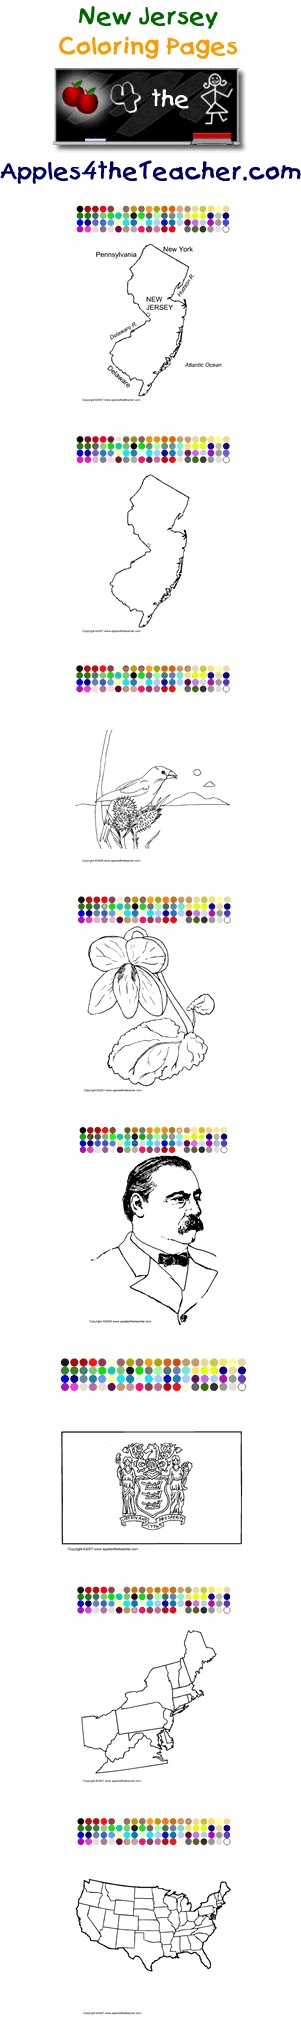 Printable interactive U.S. State coloring pages, New Jersey coloring pages for kids.